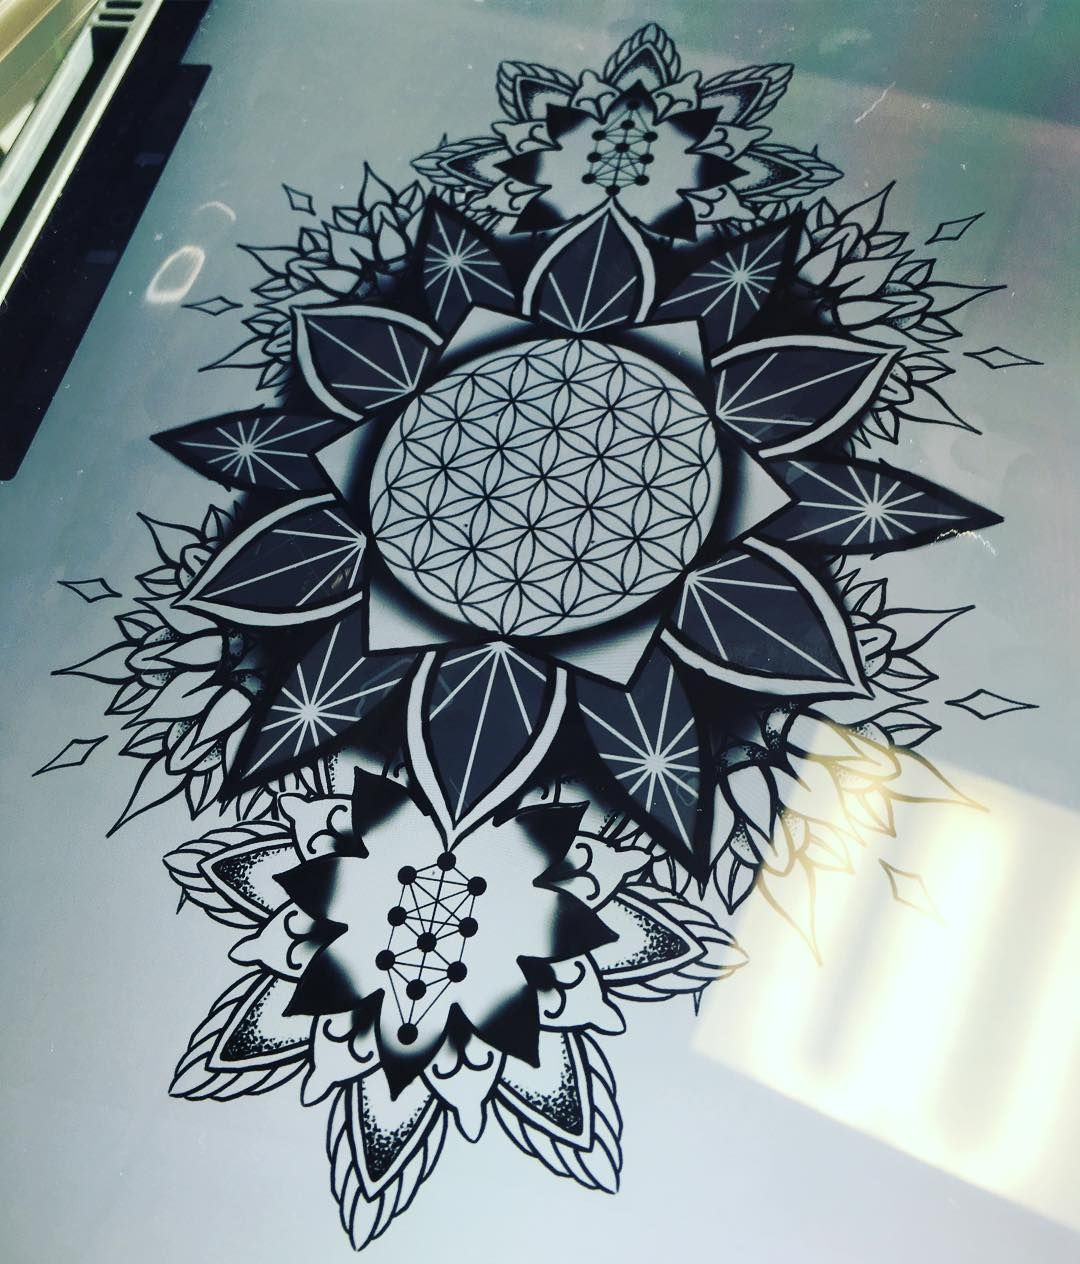 35 Spiritual Mandala Tattoo Designs: Working On A Sacred Geometry Mandala Tattoo Design For